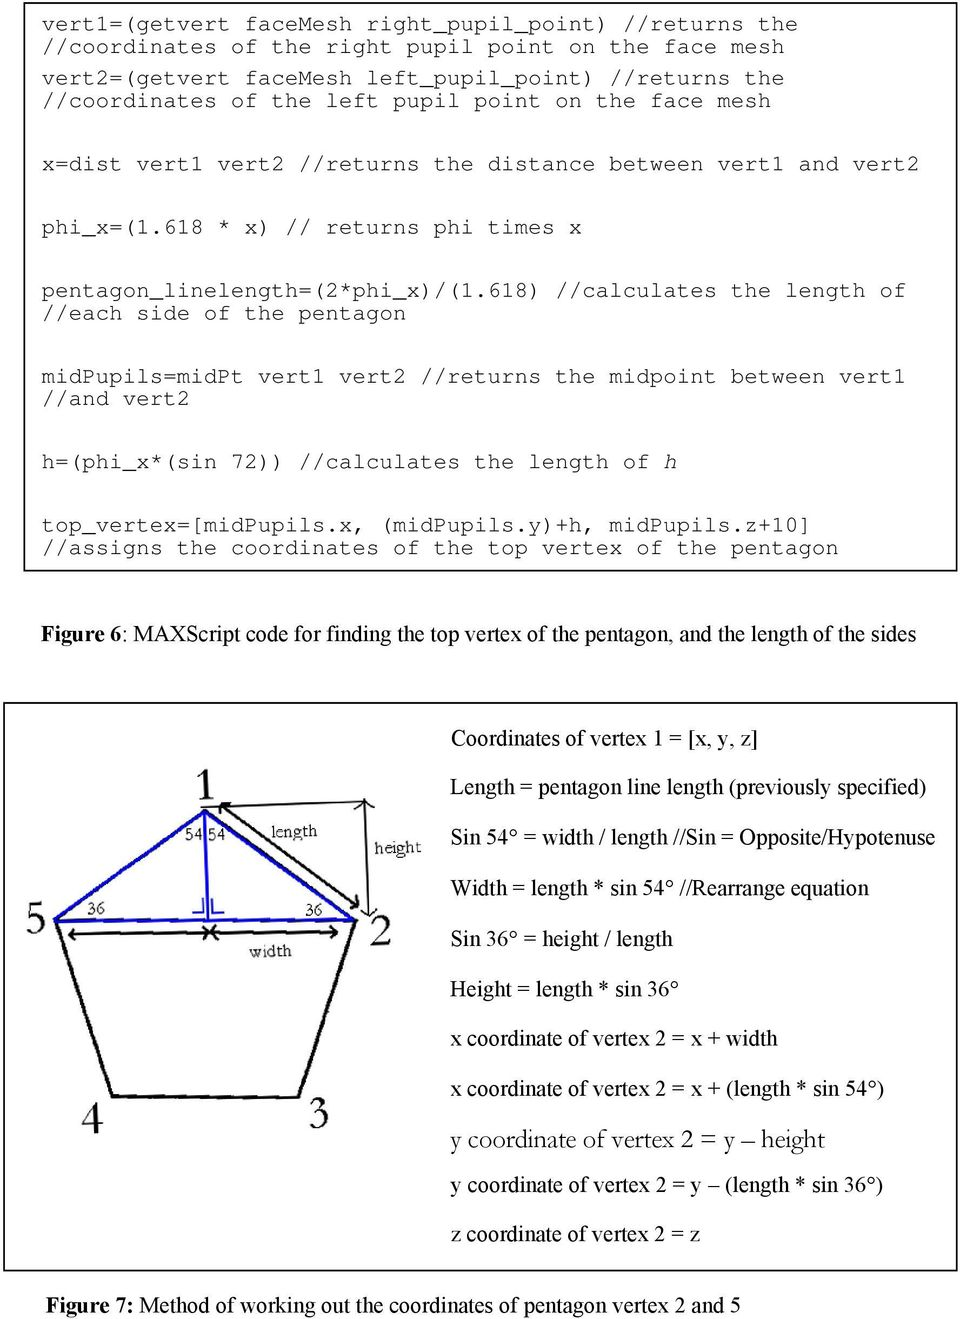 618) //calculates the length of //each side of the pentagon midpupils=midpt vert1 vert2 //returns the midpoint between vert1 //and vert2 h=(phi_x*(sin 72)) //calculates the length of h